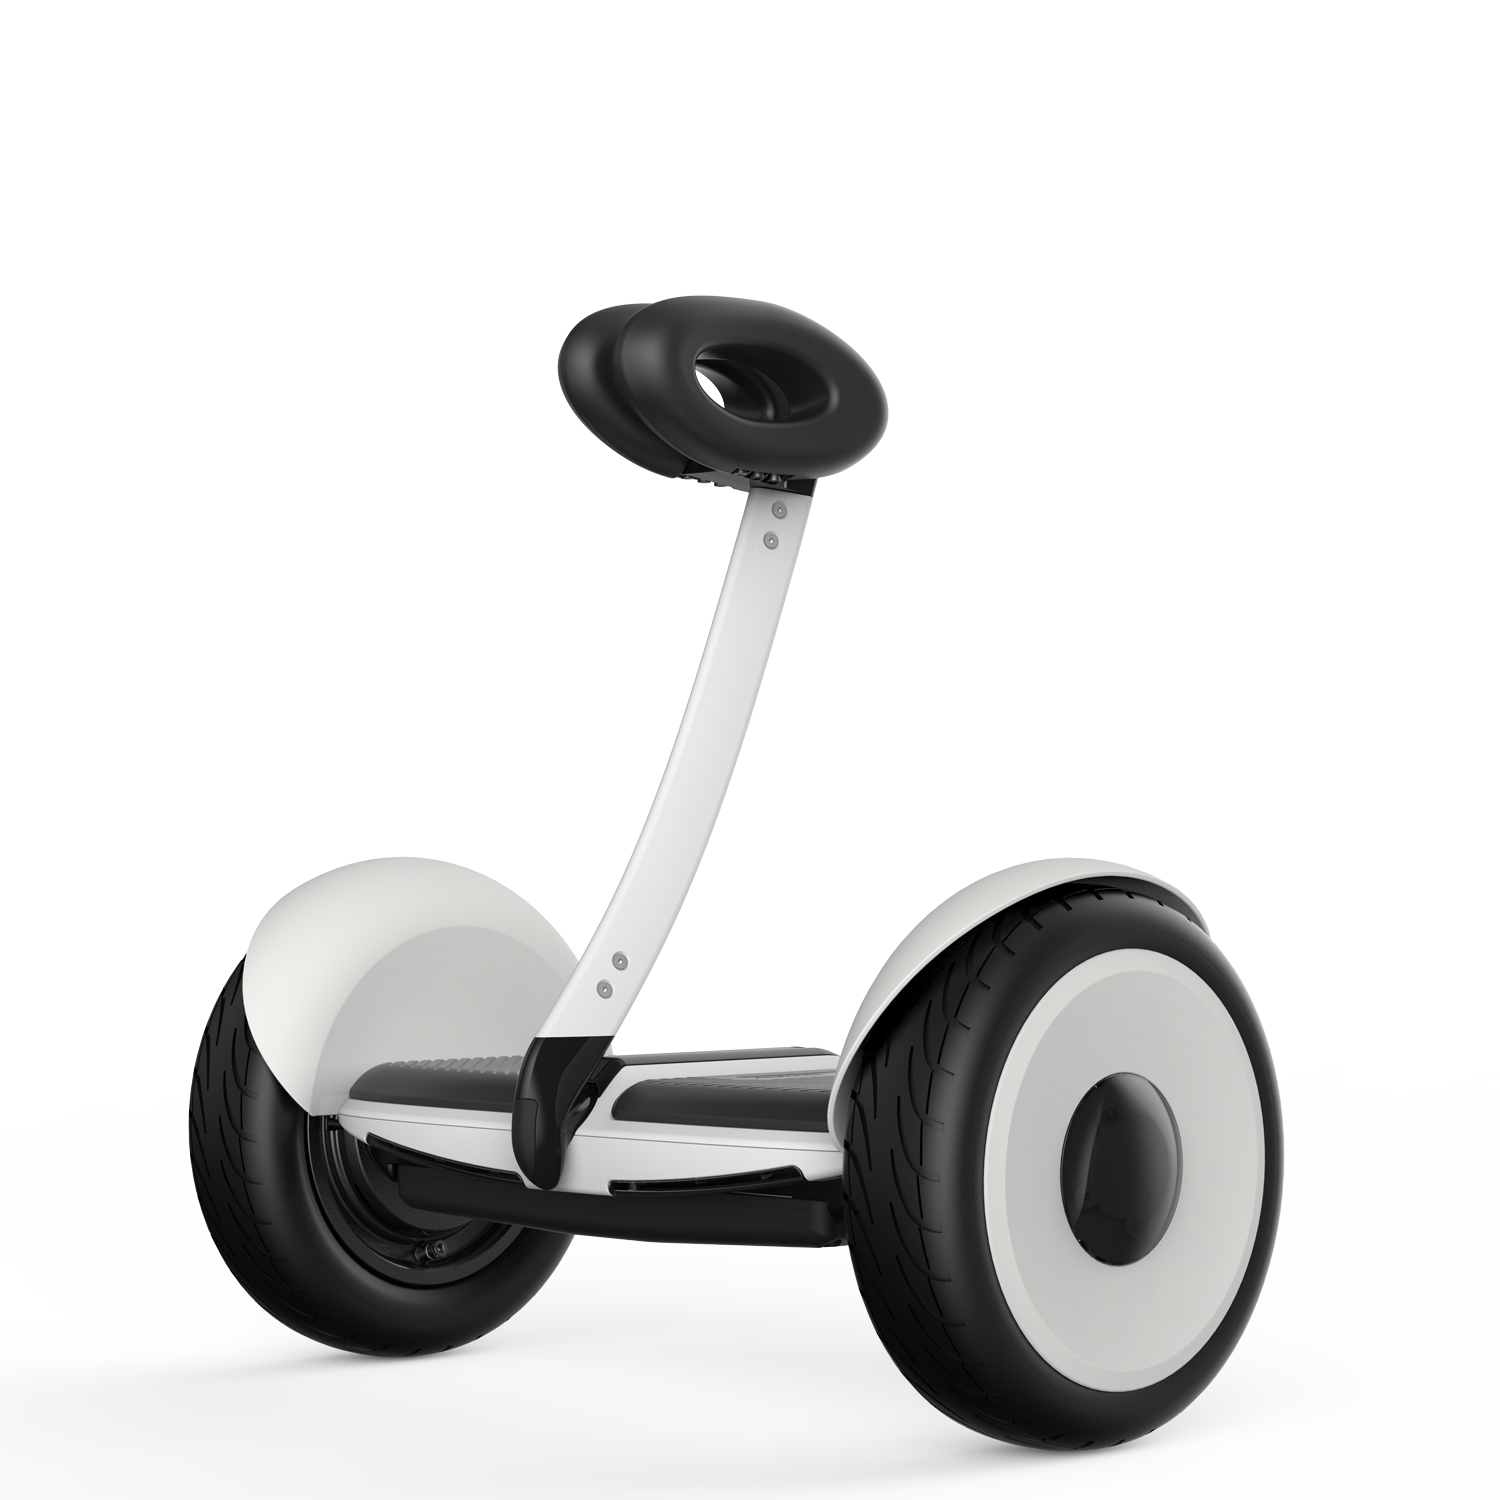 Knee Scooter For Sale >> Segway miniLITE